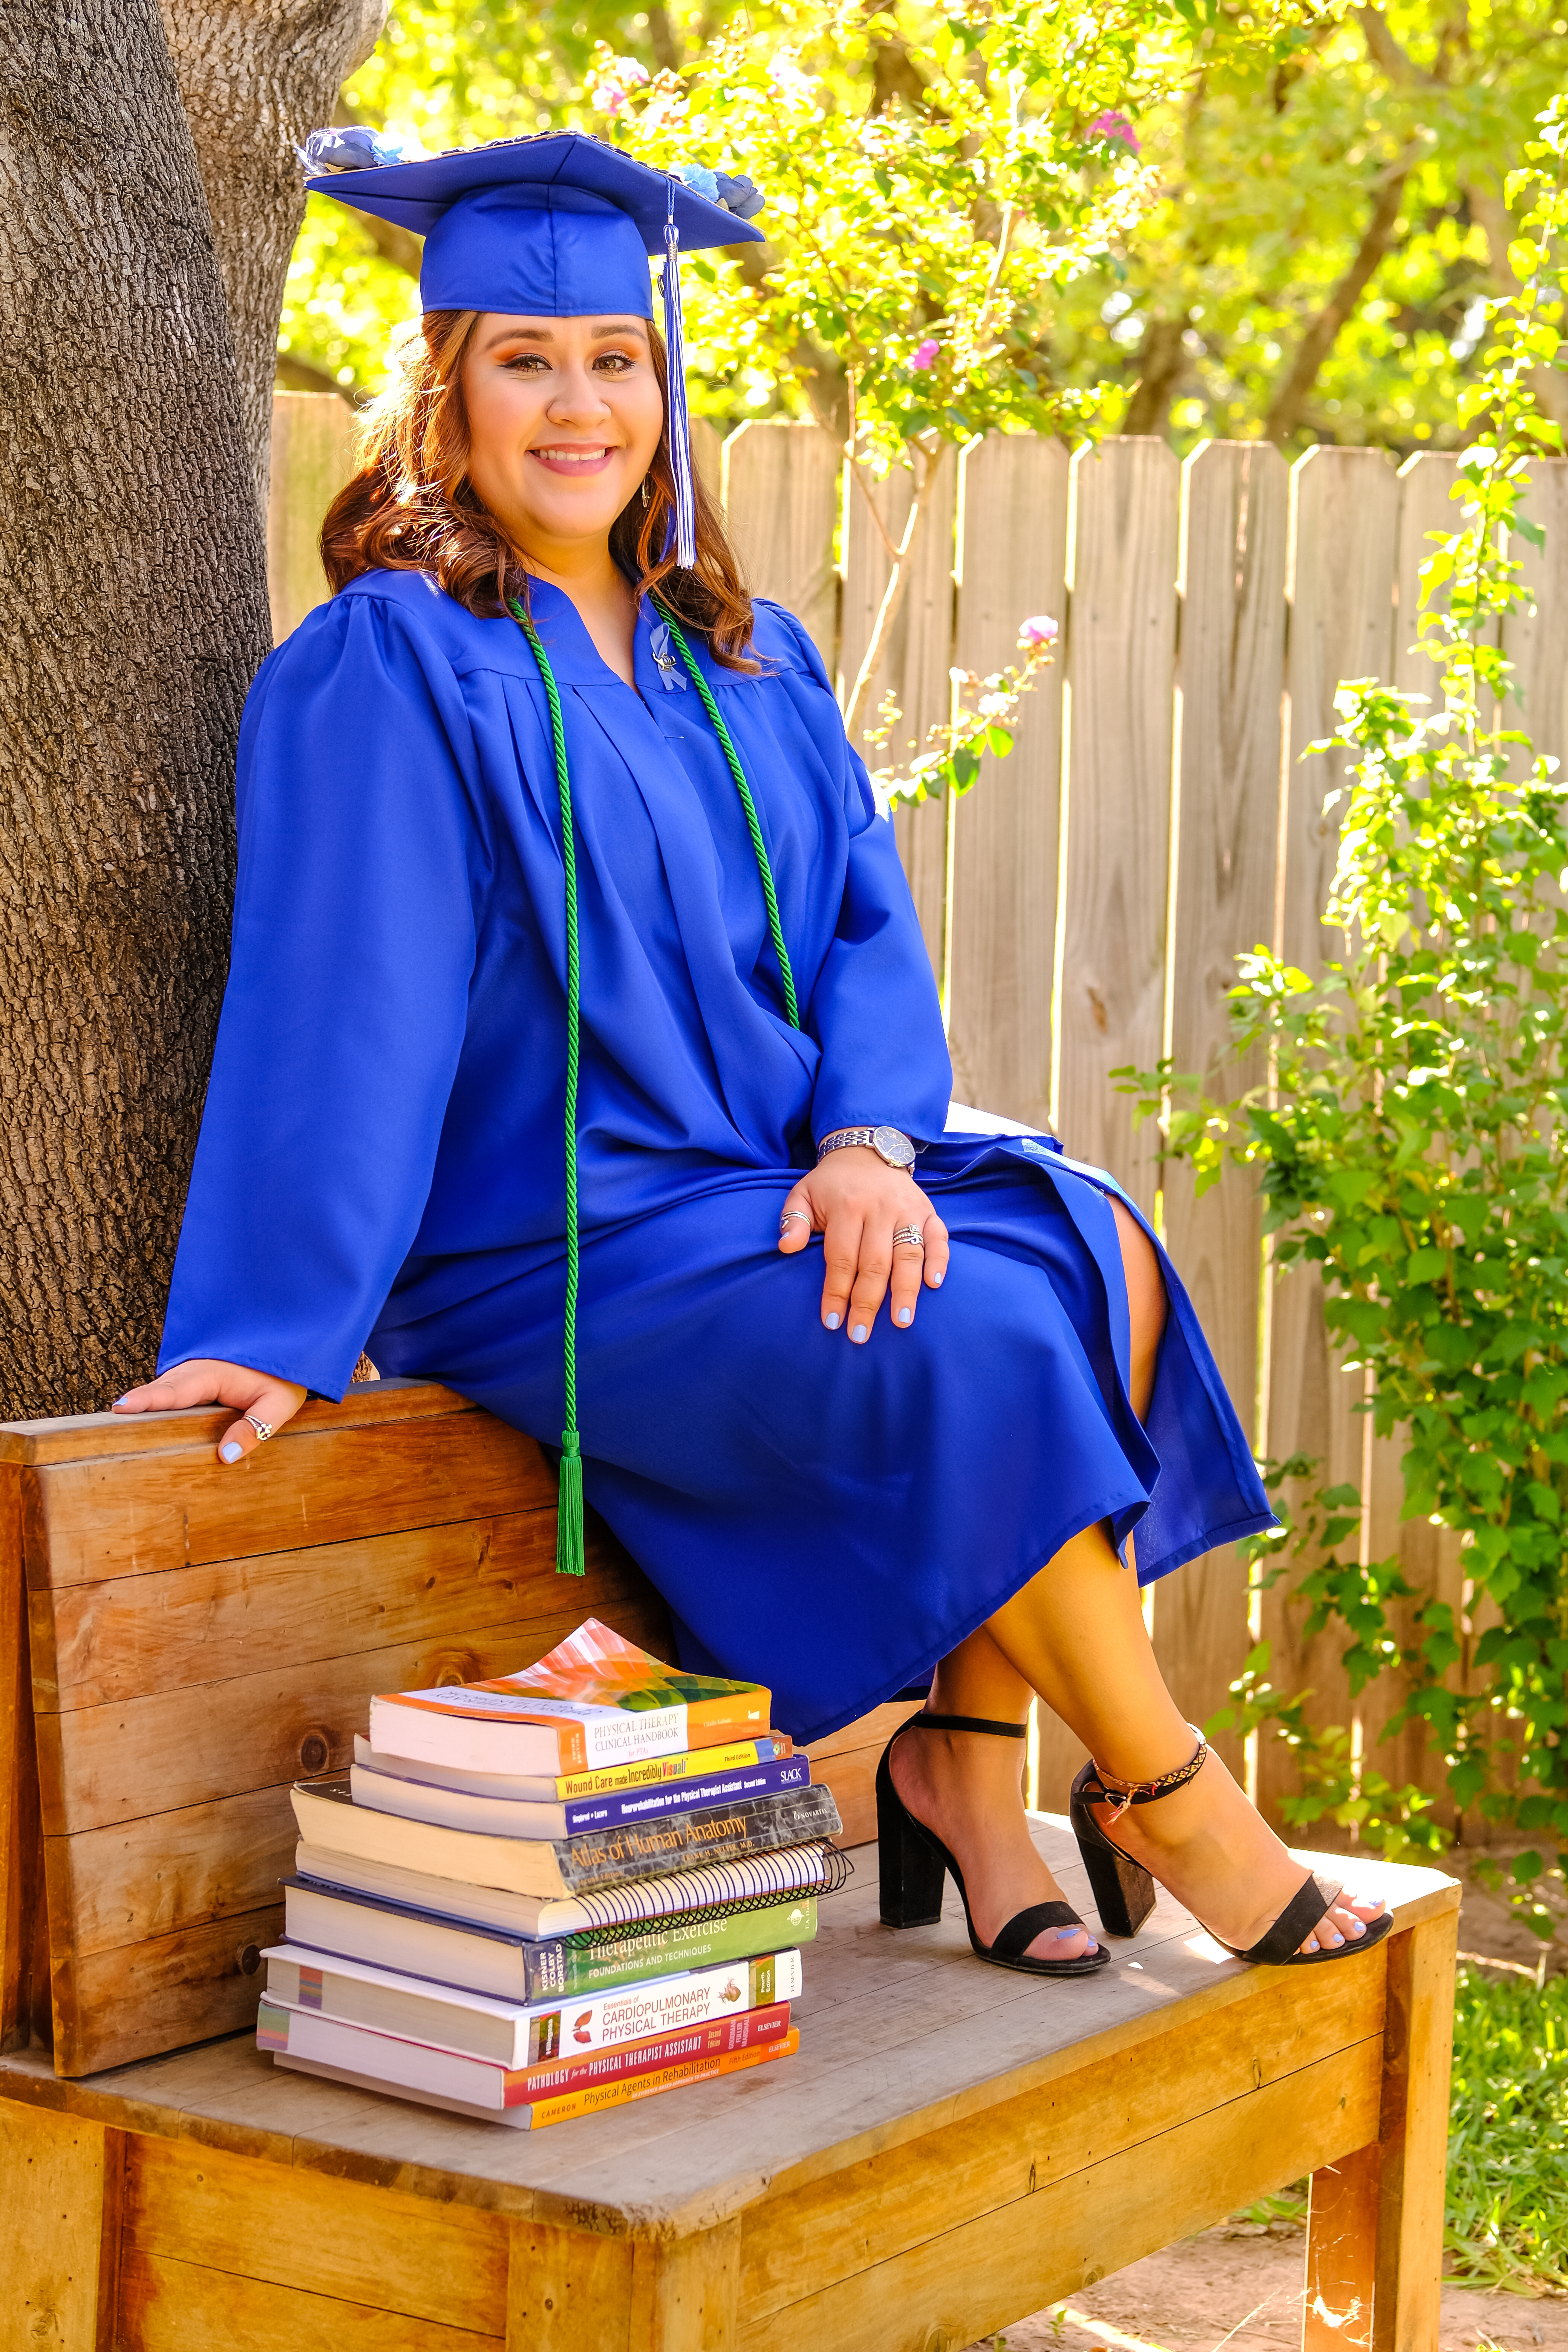 female college grad sitting on wood bench with textbooks in regalia